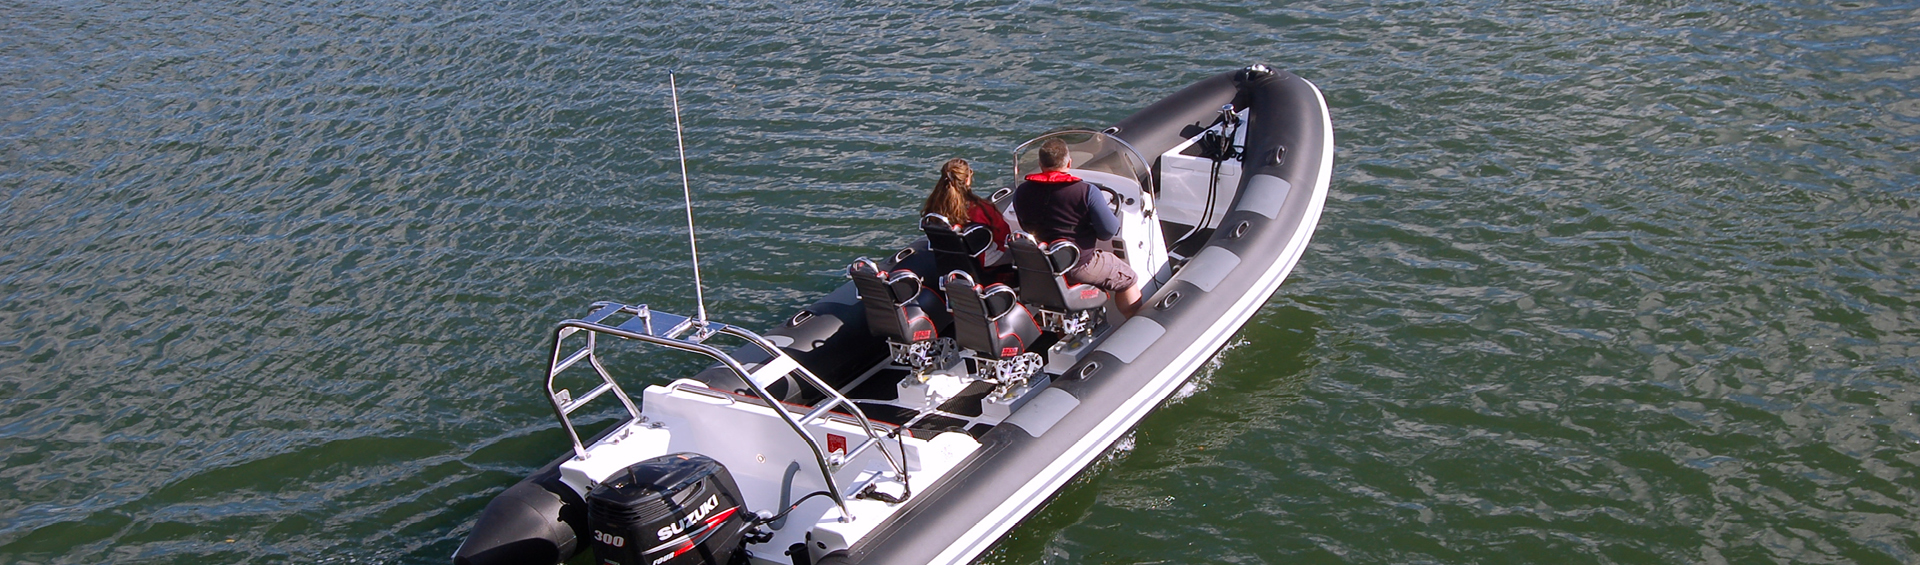 Redbay Storm force 7.4 rib